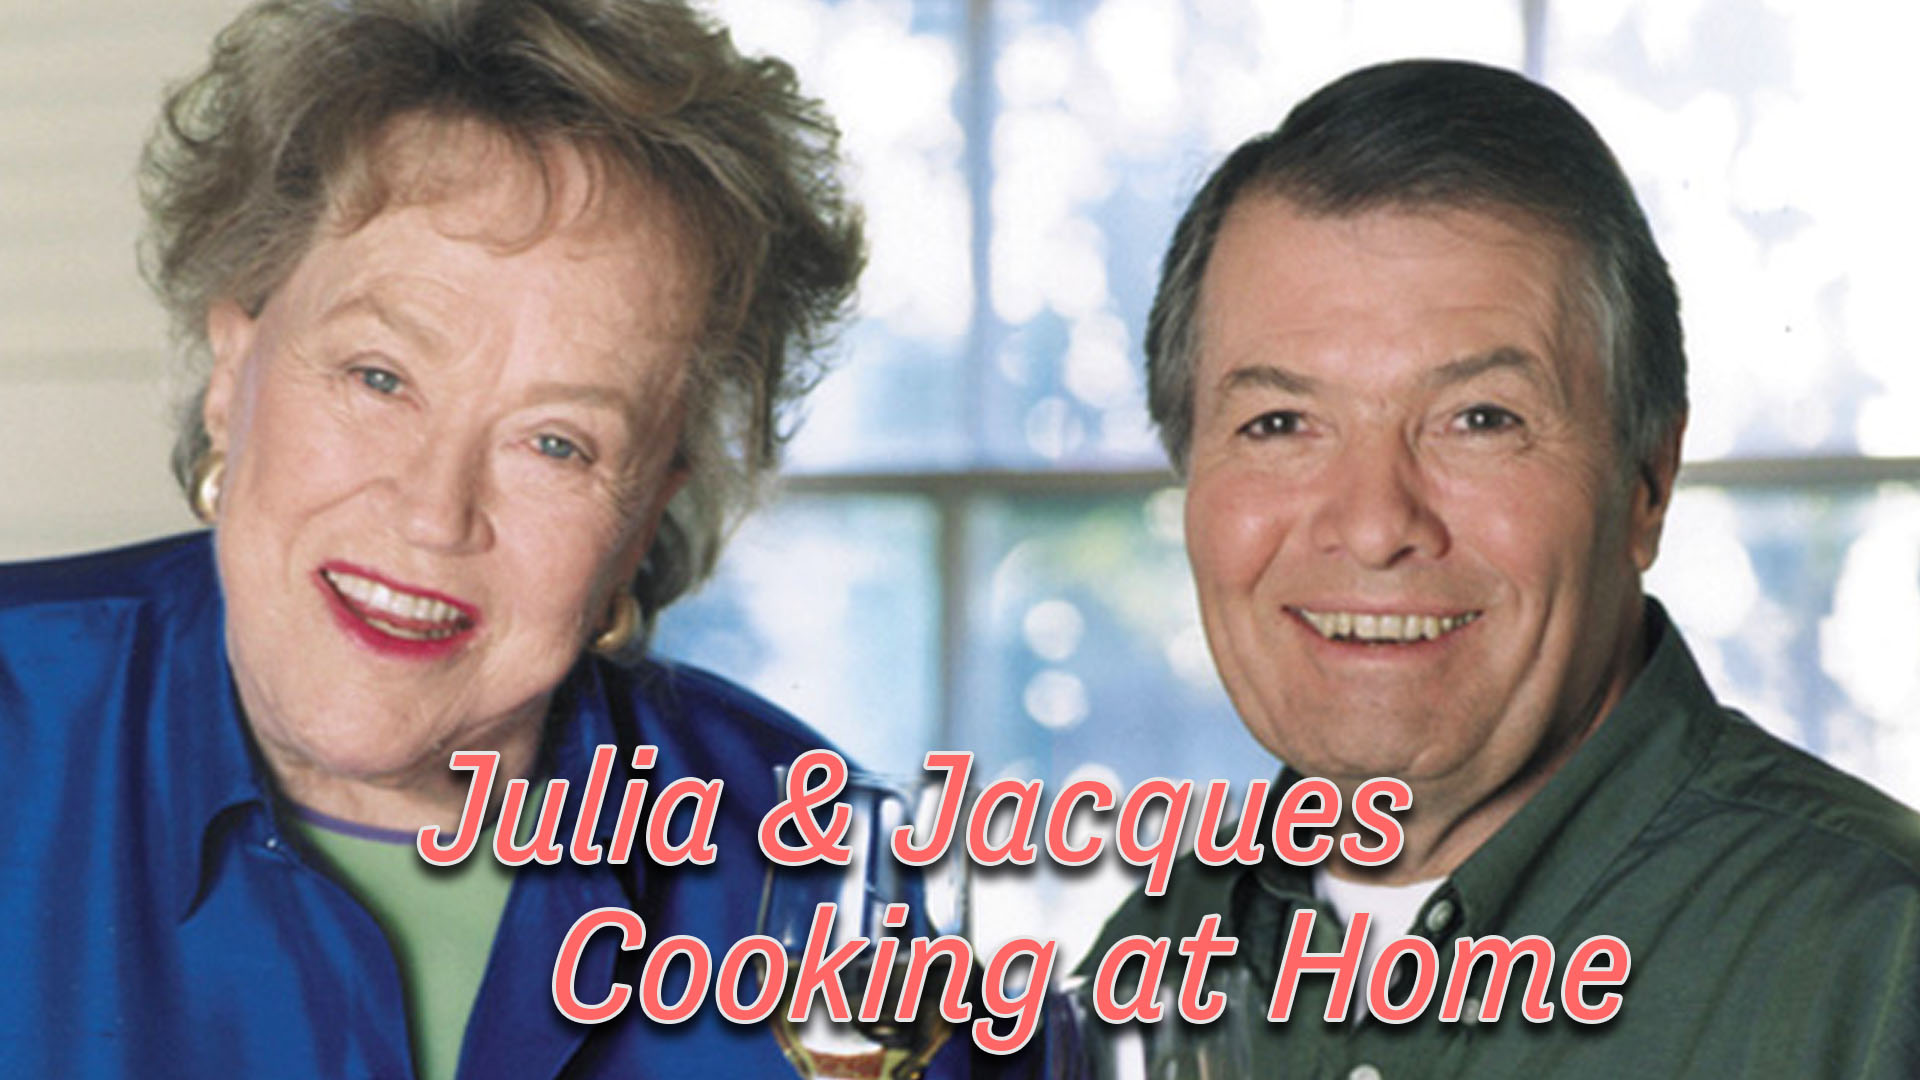 Julia & Jacques Cooking at Home